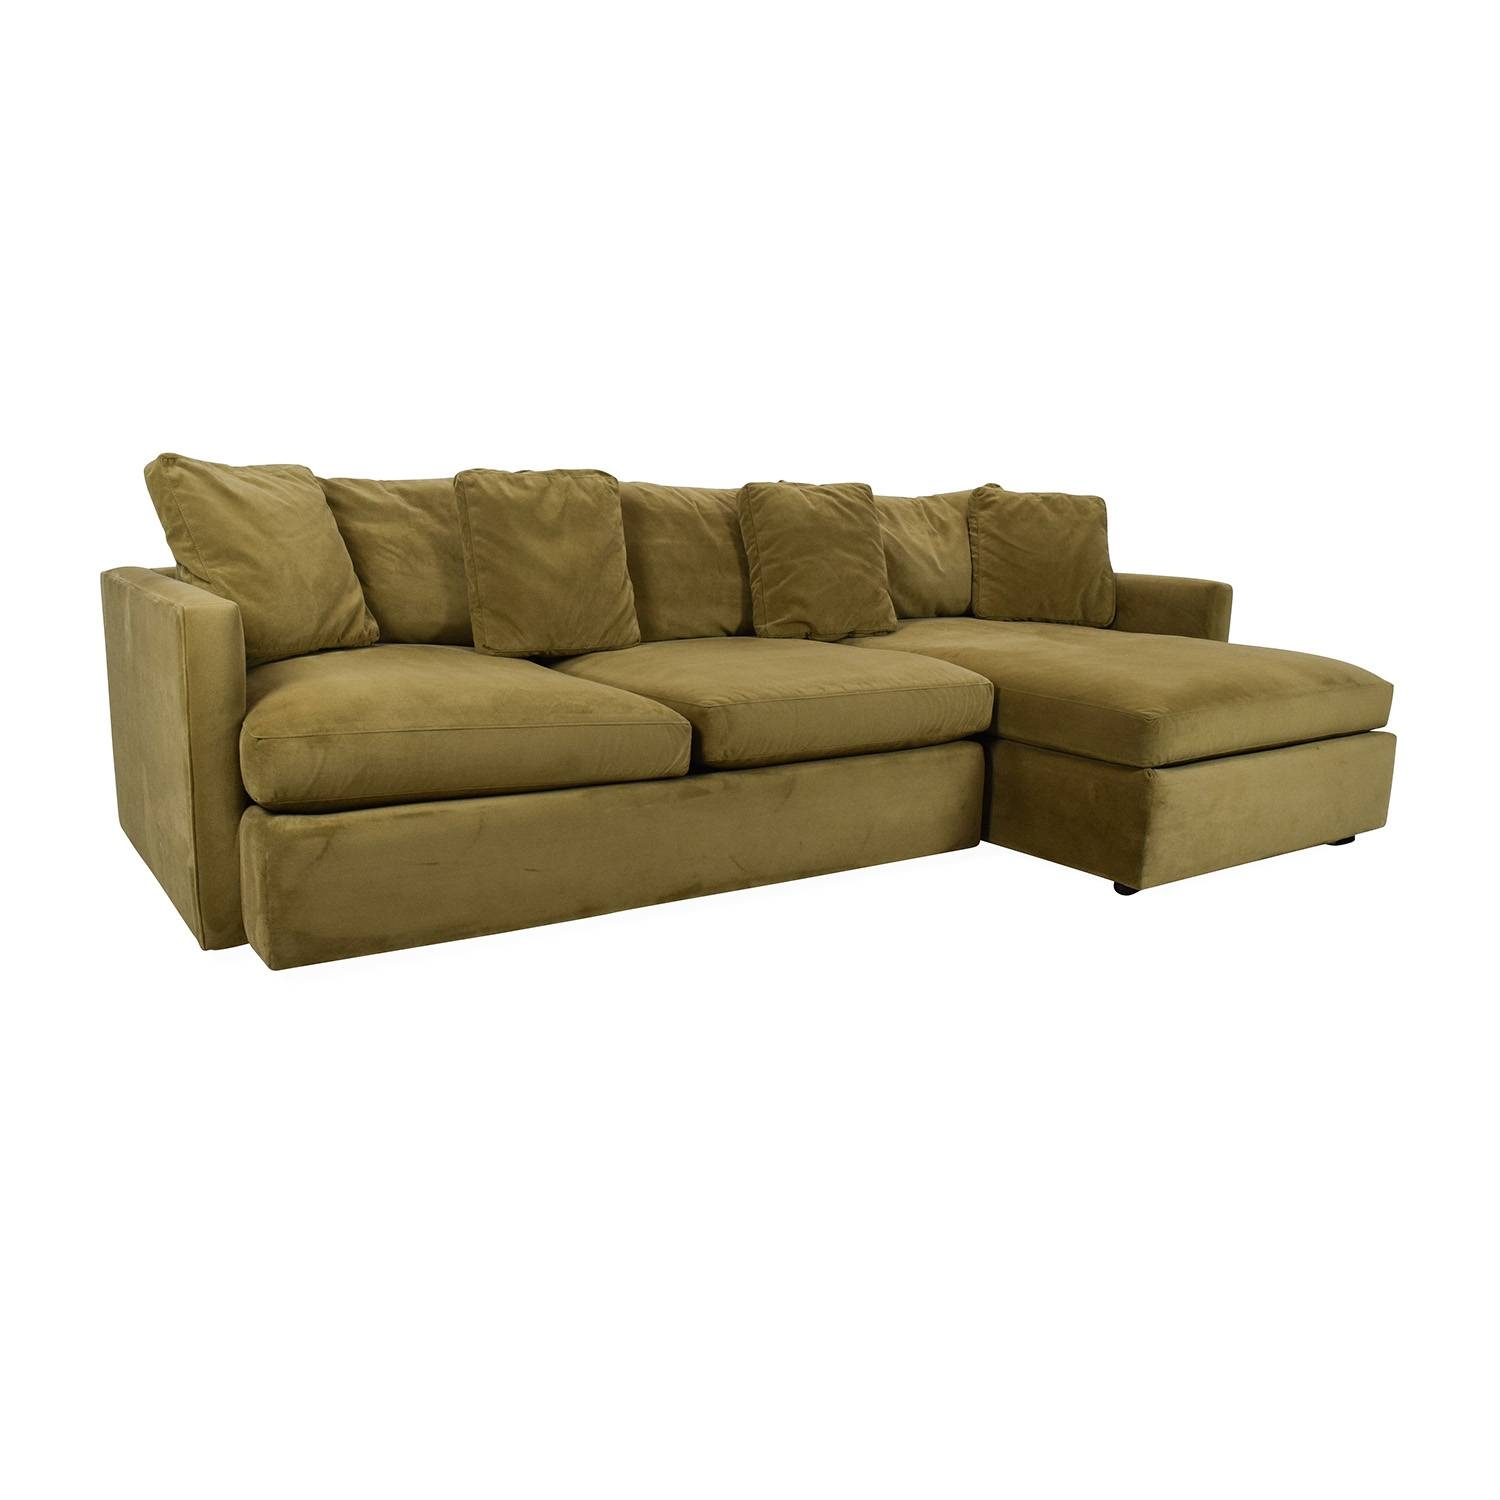 65% Off   Crate And Barrel Crate And Barrel Lounge Ii Sectional Inside Crate And Barrel Sectional Sofas (Photo 4 of 30)